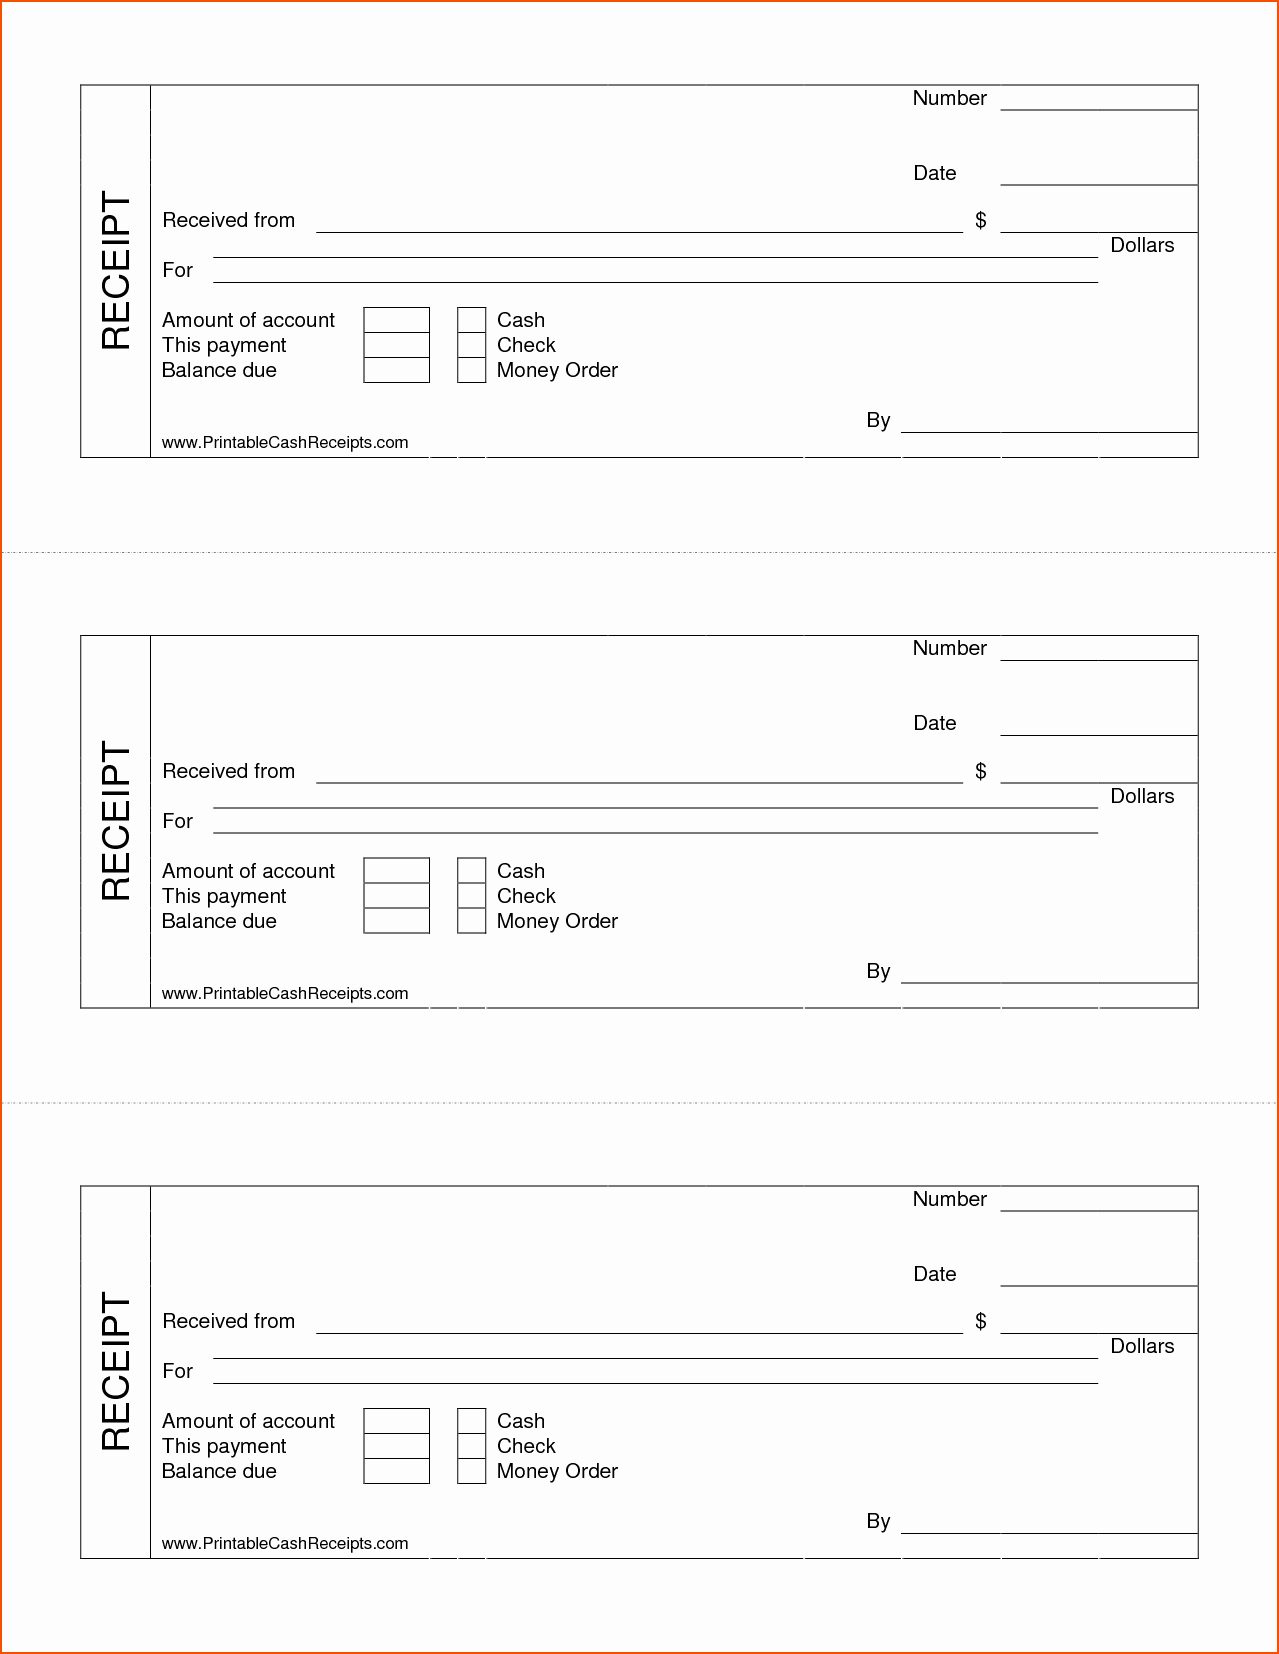 Product Received for Free Awesome 7 Printable Cash Receipt Bookletemplate